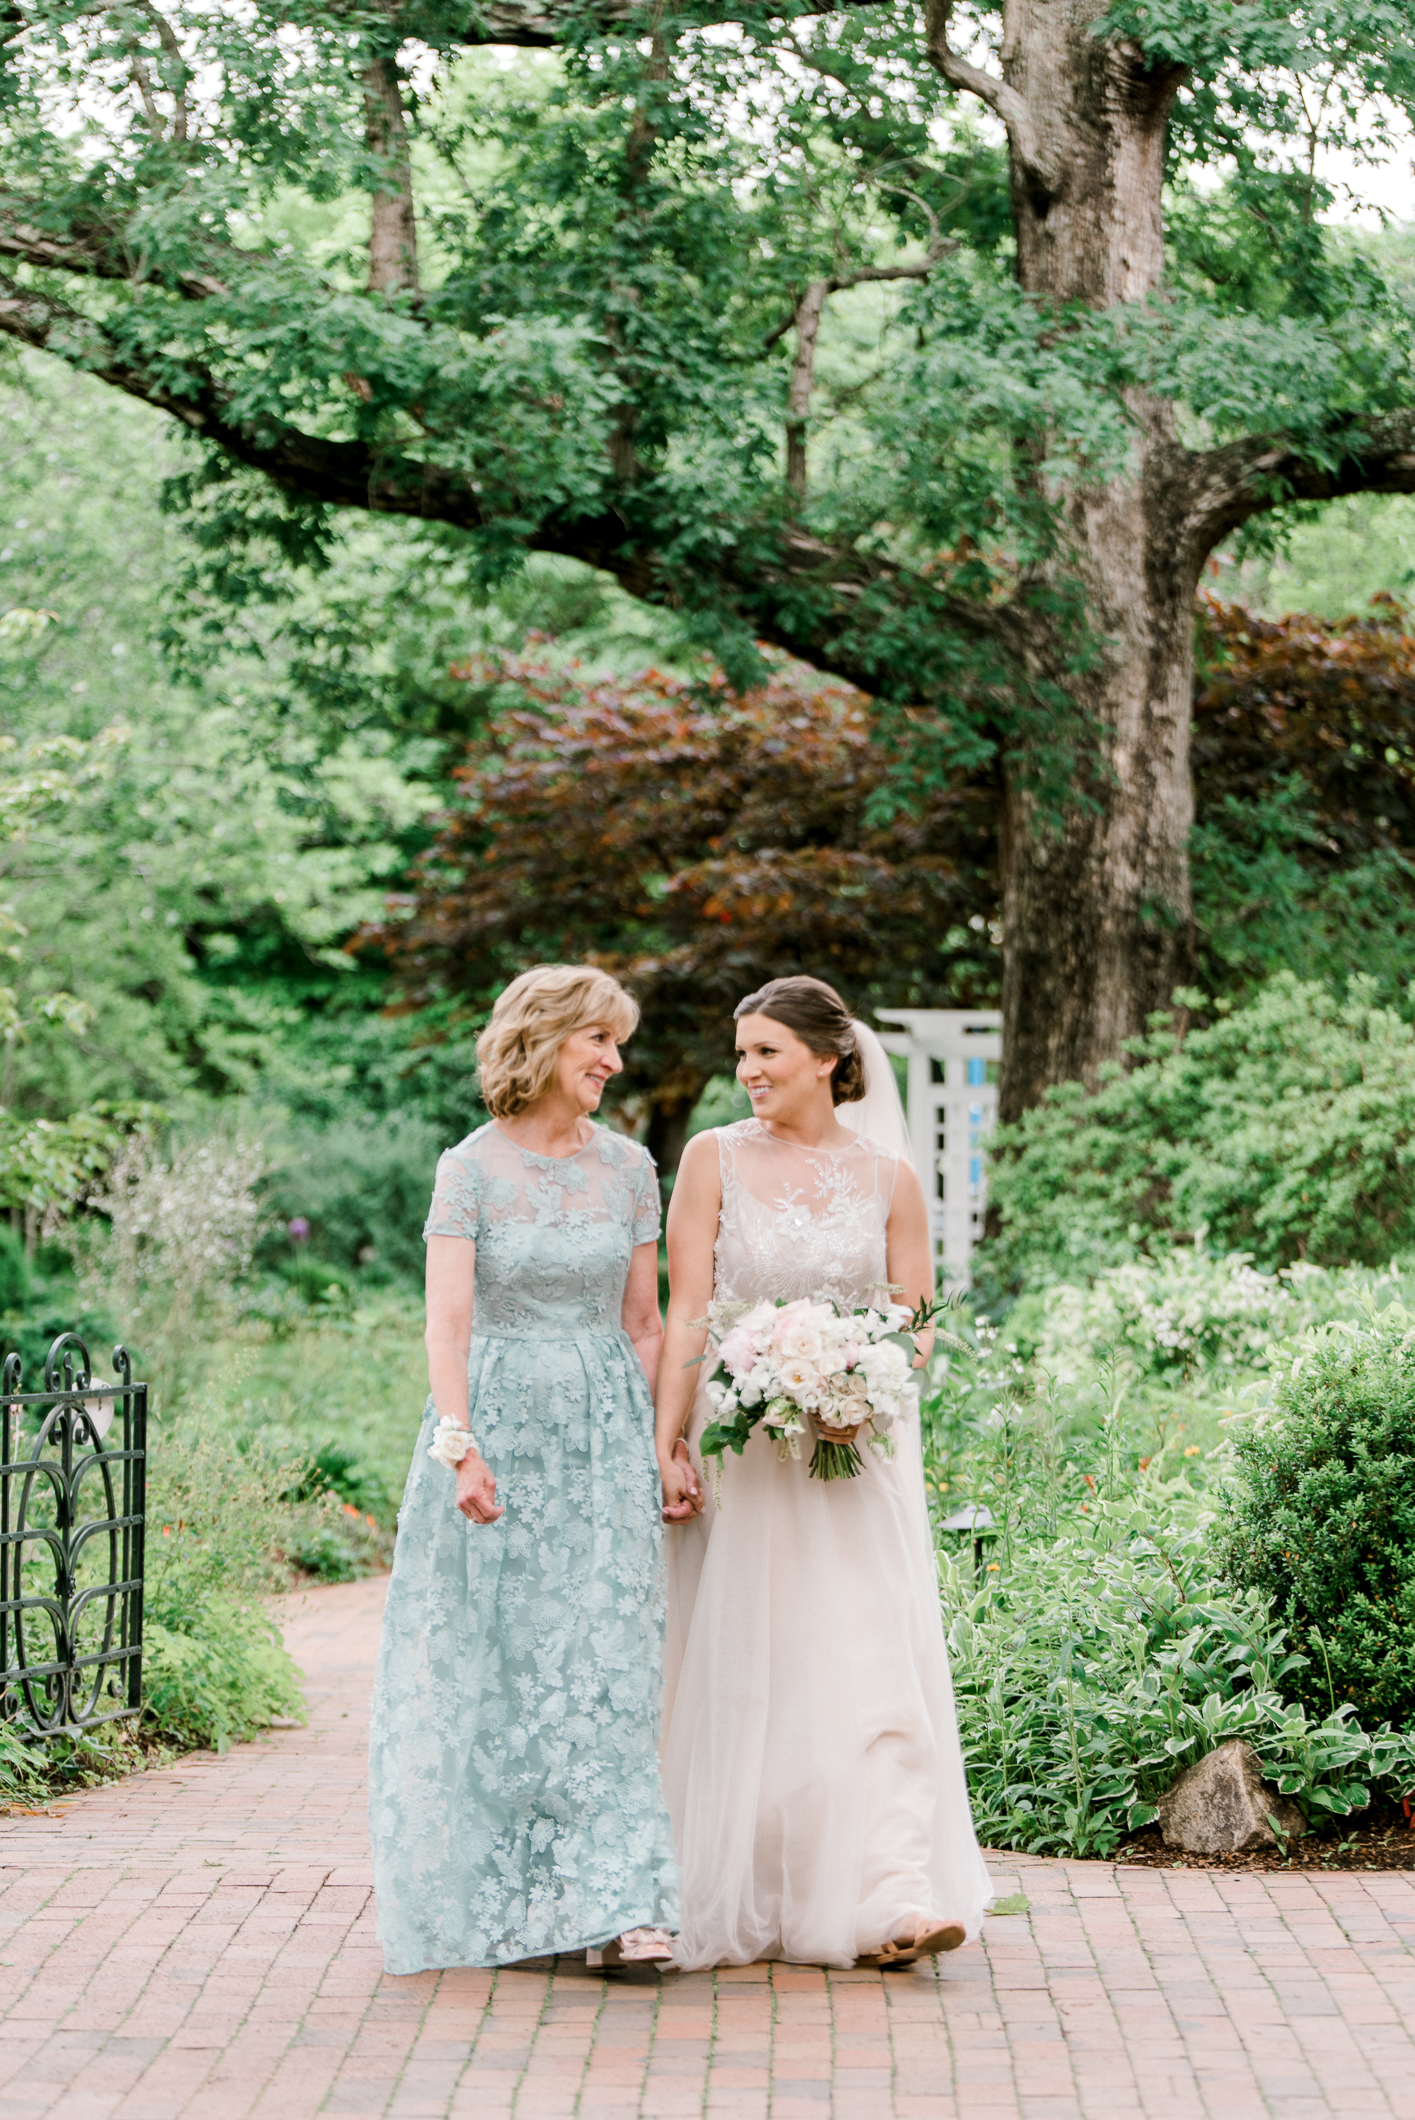 Gorgeous mother of the bride dress in blue lace